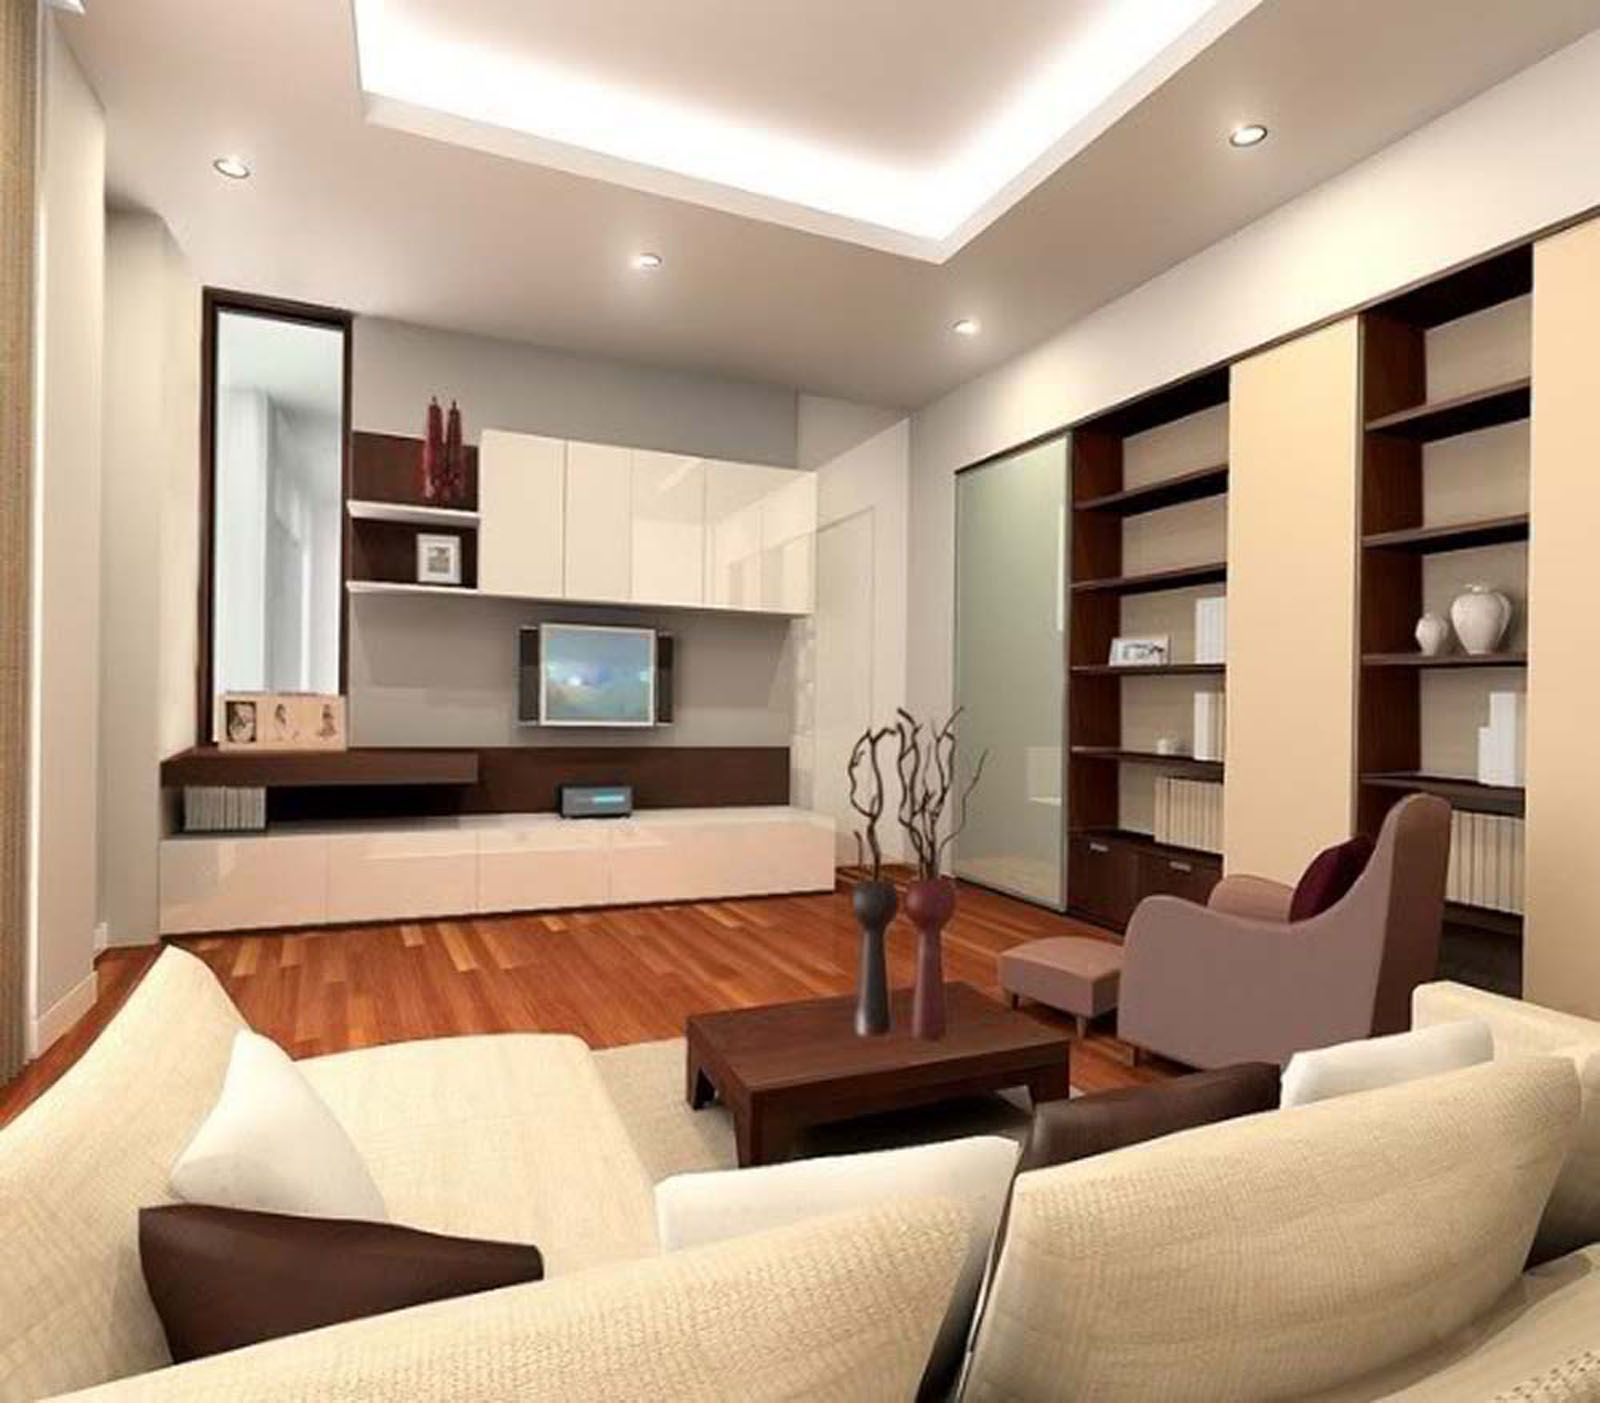 Spectacular Tiny Living Room Design On Home Remodel Ideas With Beautiful Designs For Small Living Rooms